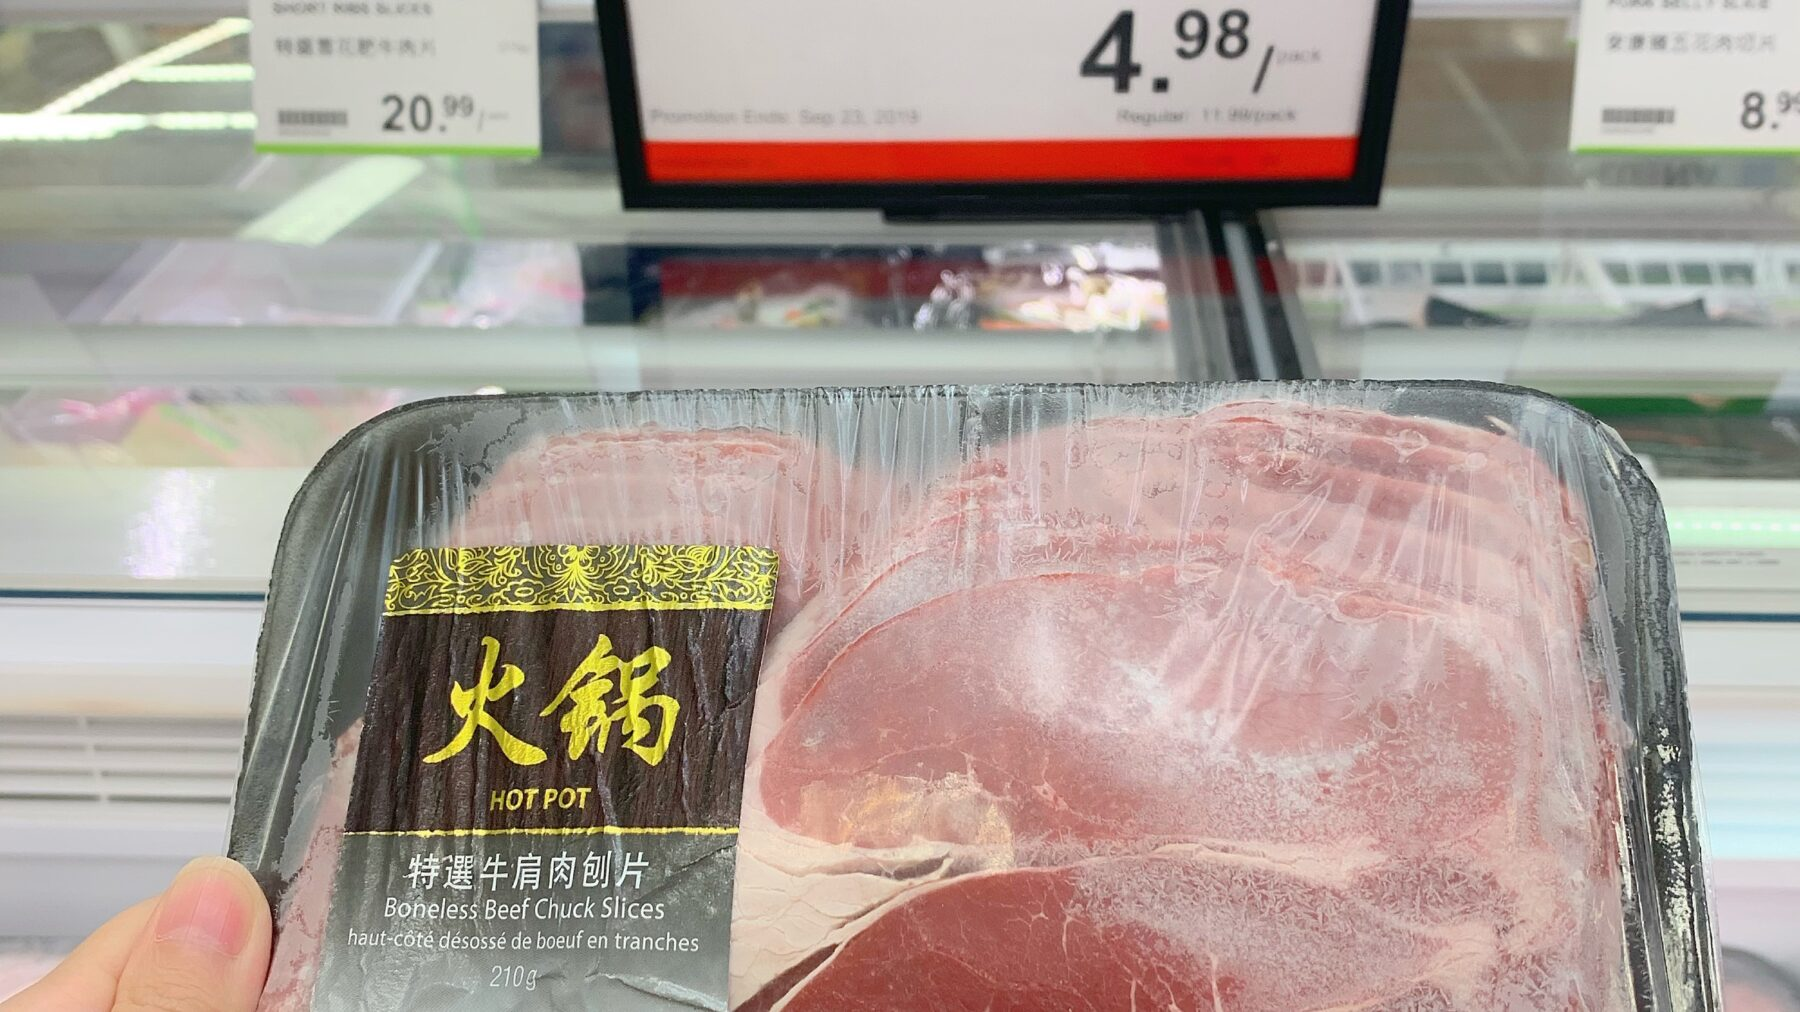 SEPTEMBER 19 2019 | AAA Beef Chuck Slices 210g $4.98 / pack